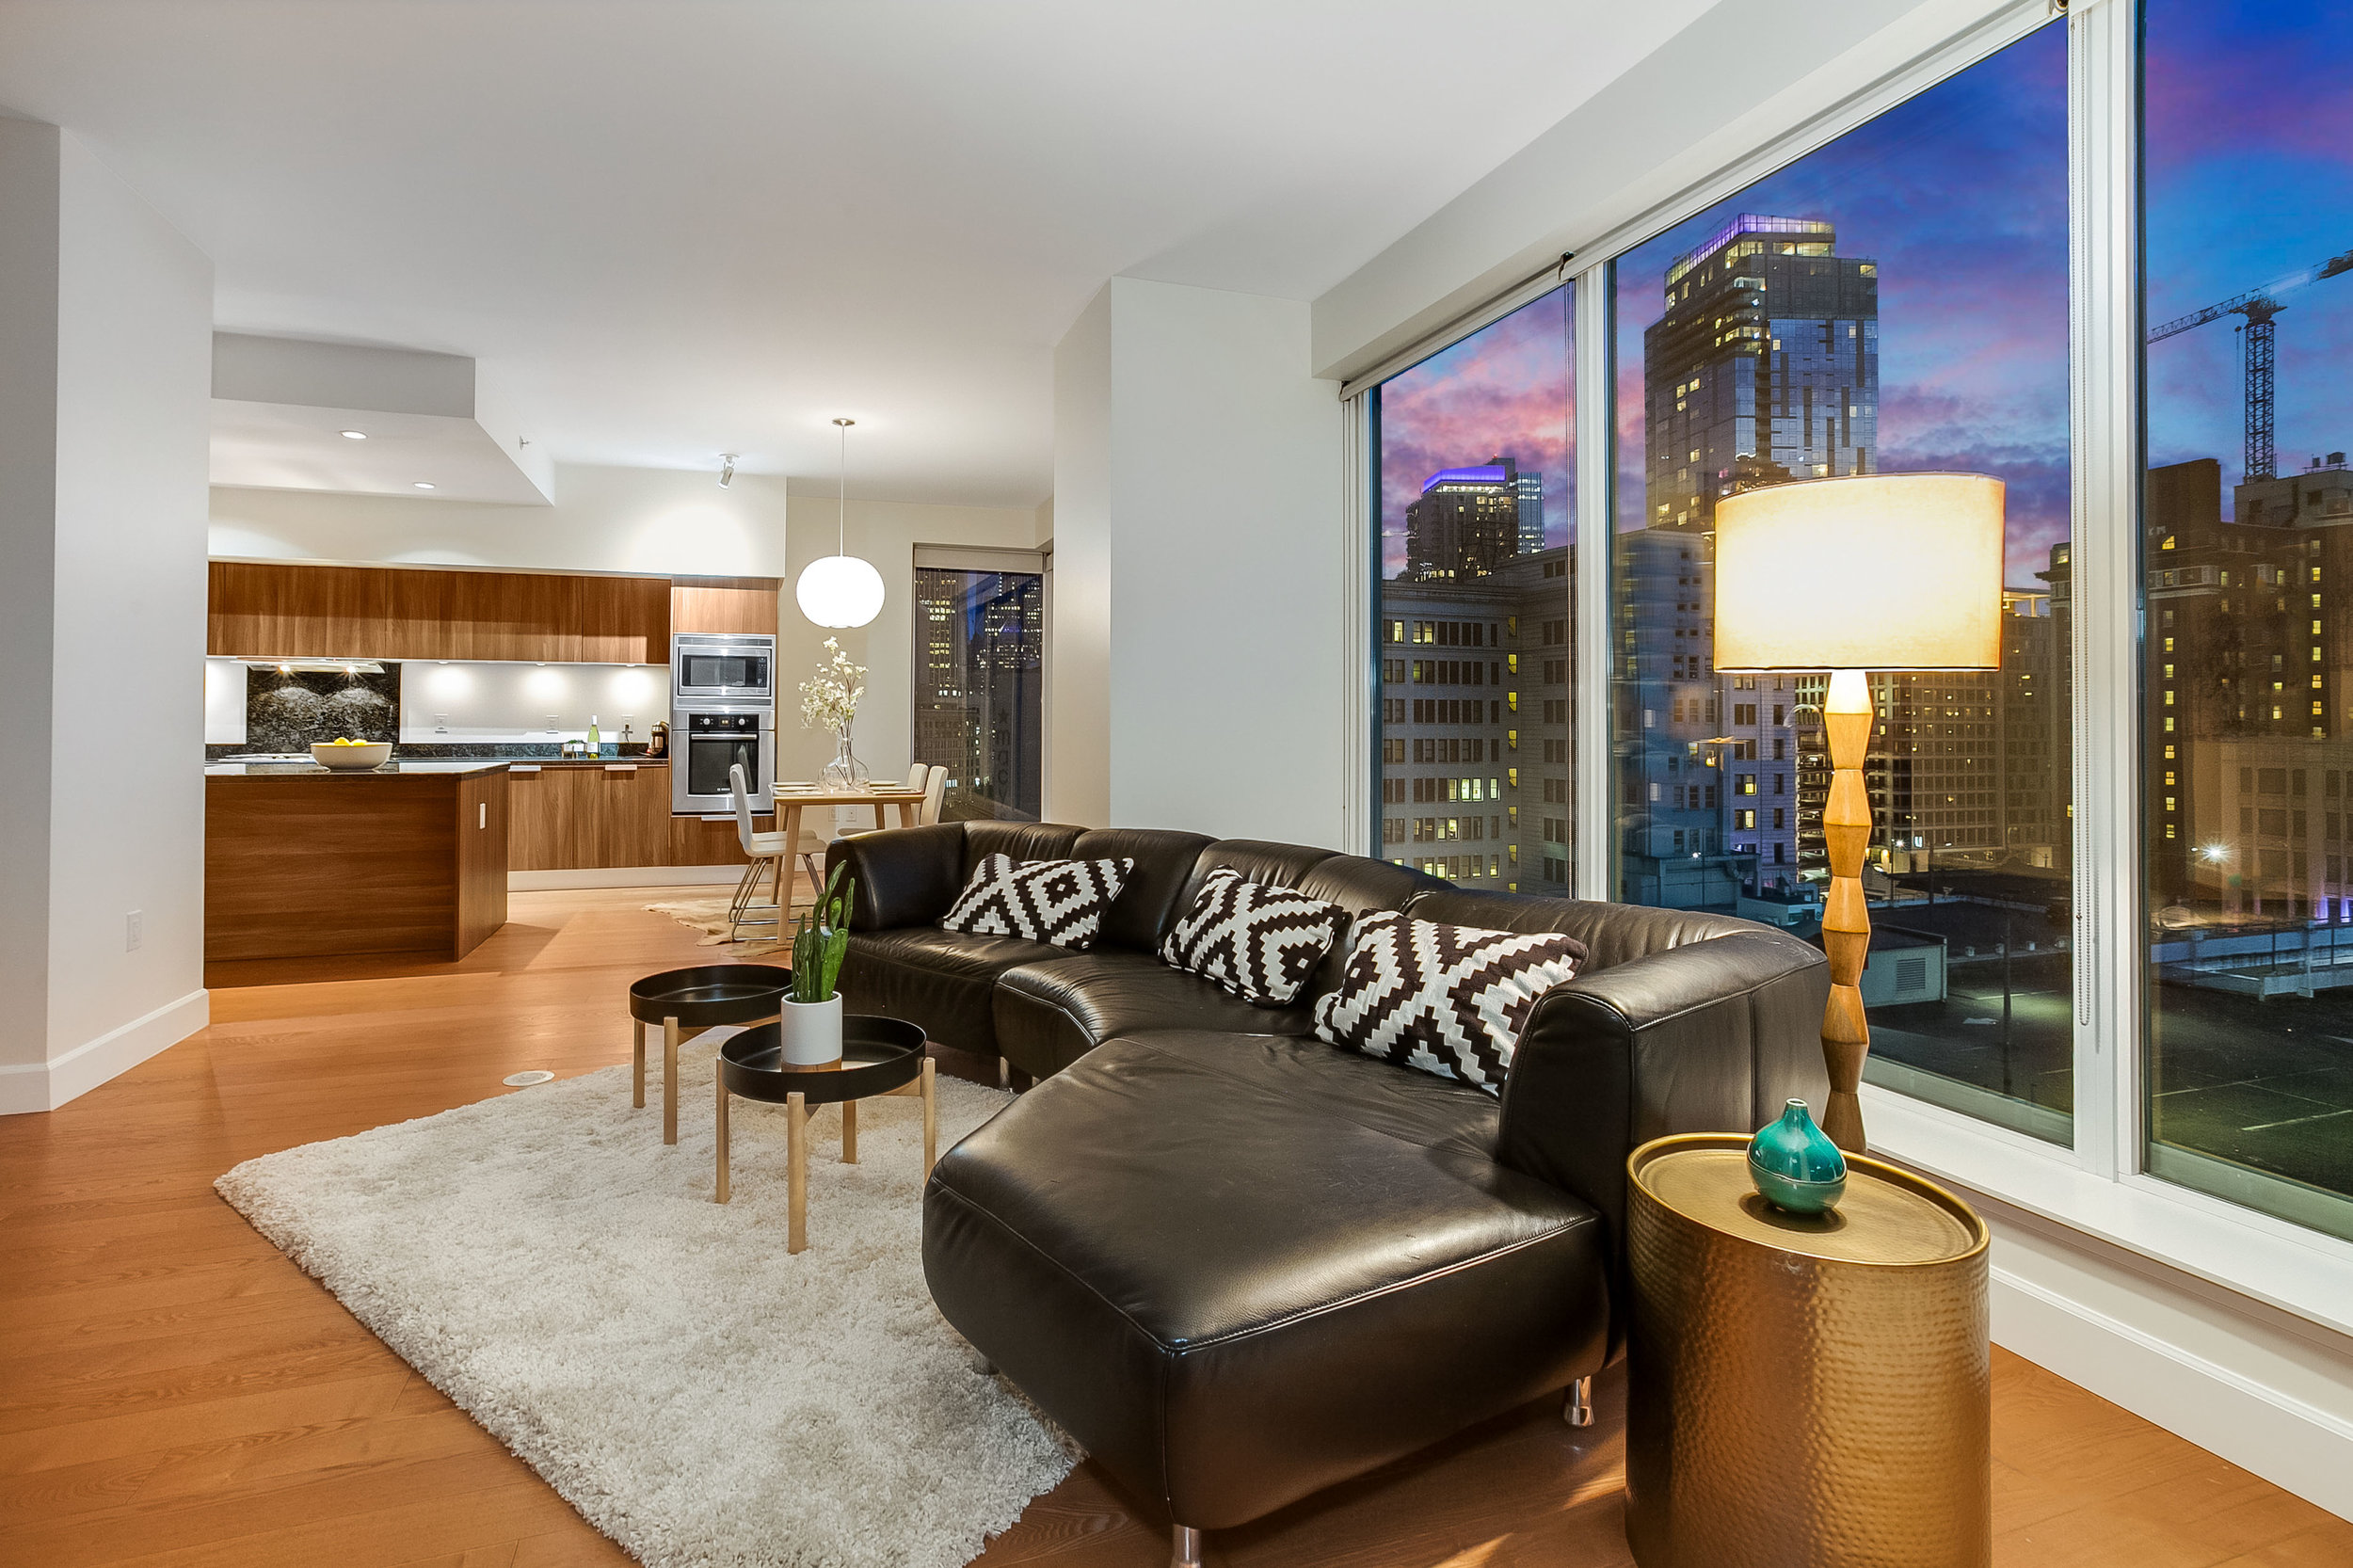 ESCALA # 902 - 2 Bedroom, 2 Bathrooms, 1,607 Square Feet2 Parking Space, 1 Storage UnitSOLD at $1,150,000